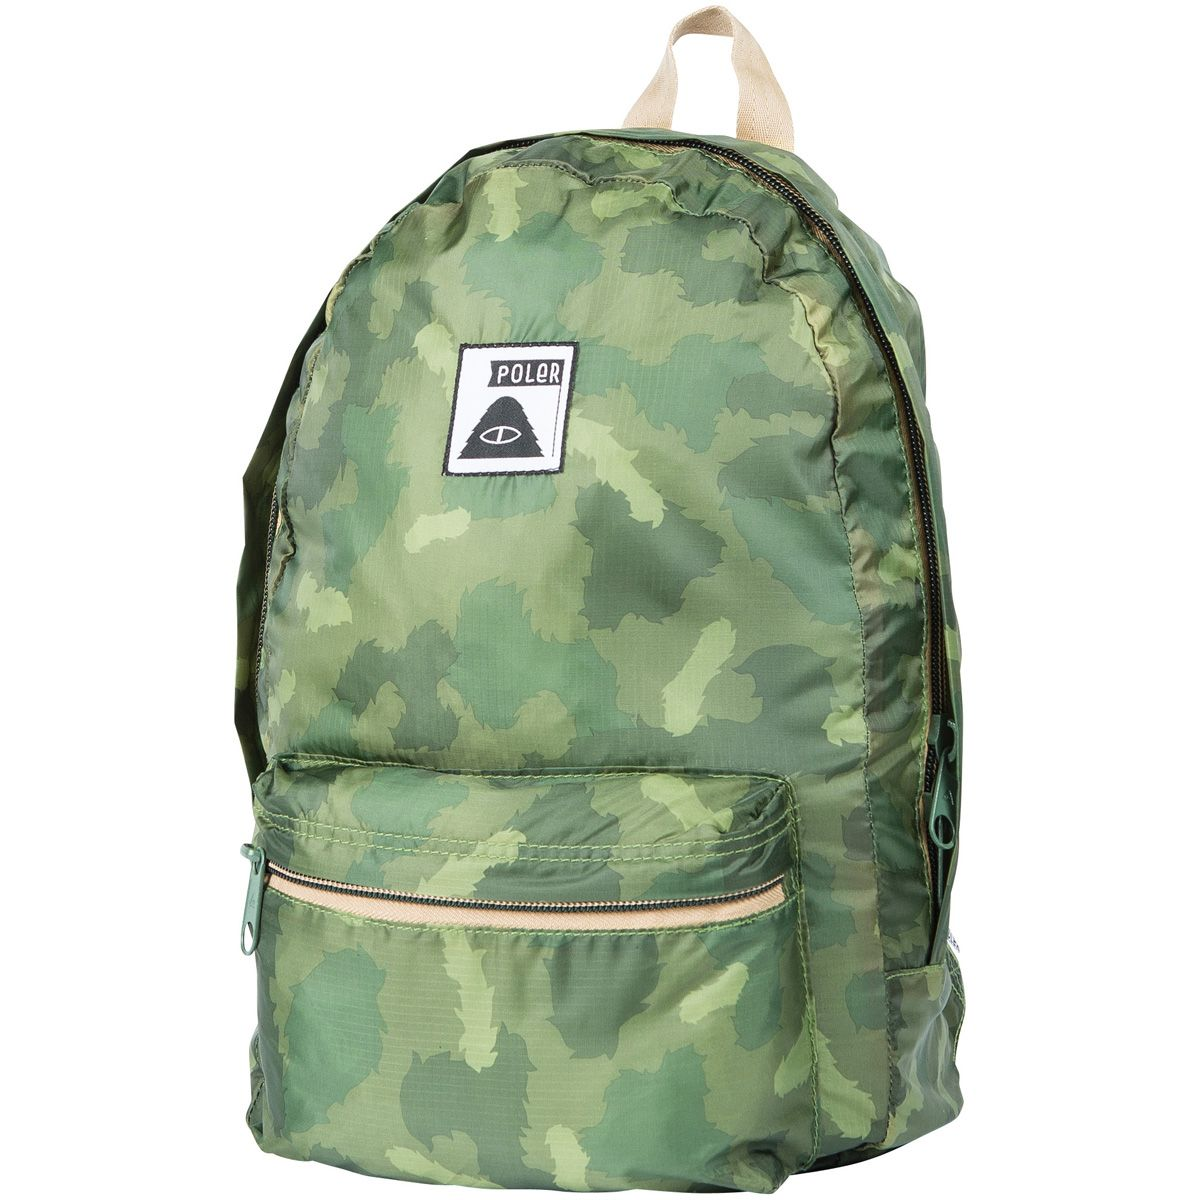 BUY NOW  Poler Stuffable Backpack   Green Camo  05dc12d7f74f1